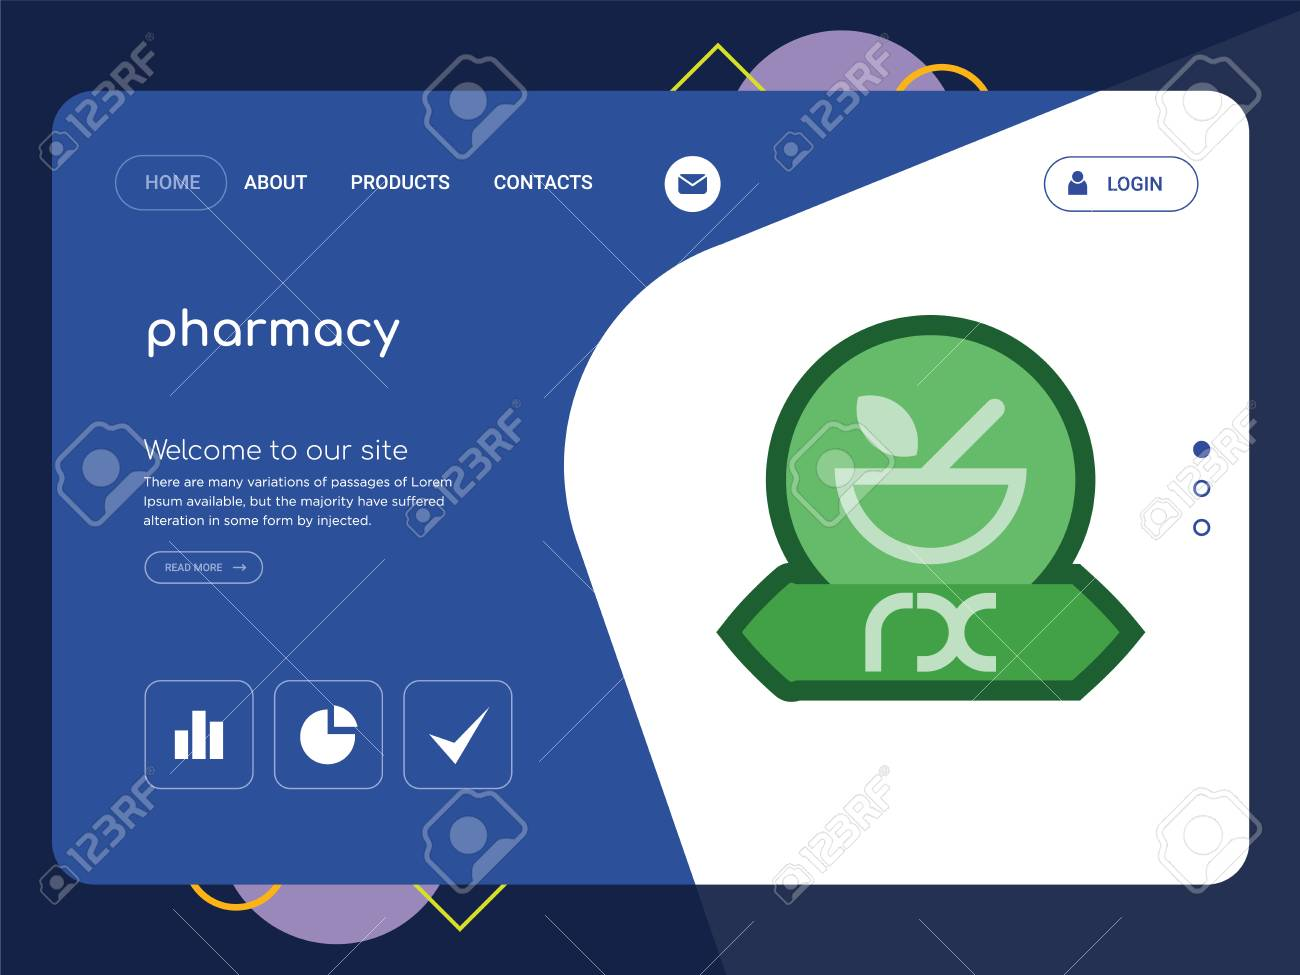 Compounding pharmacy website templates medical website templates.